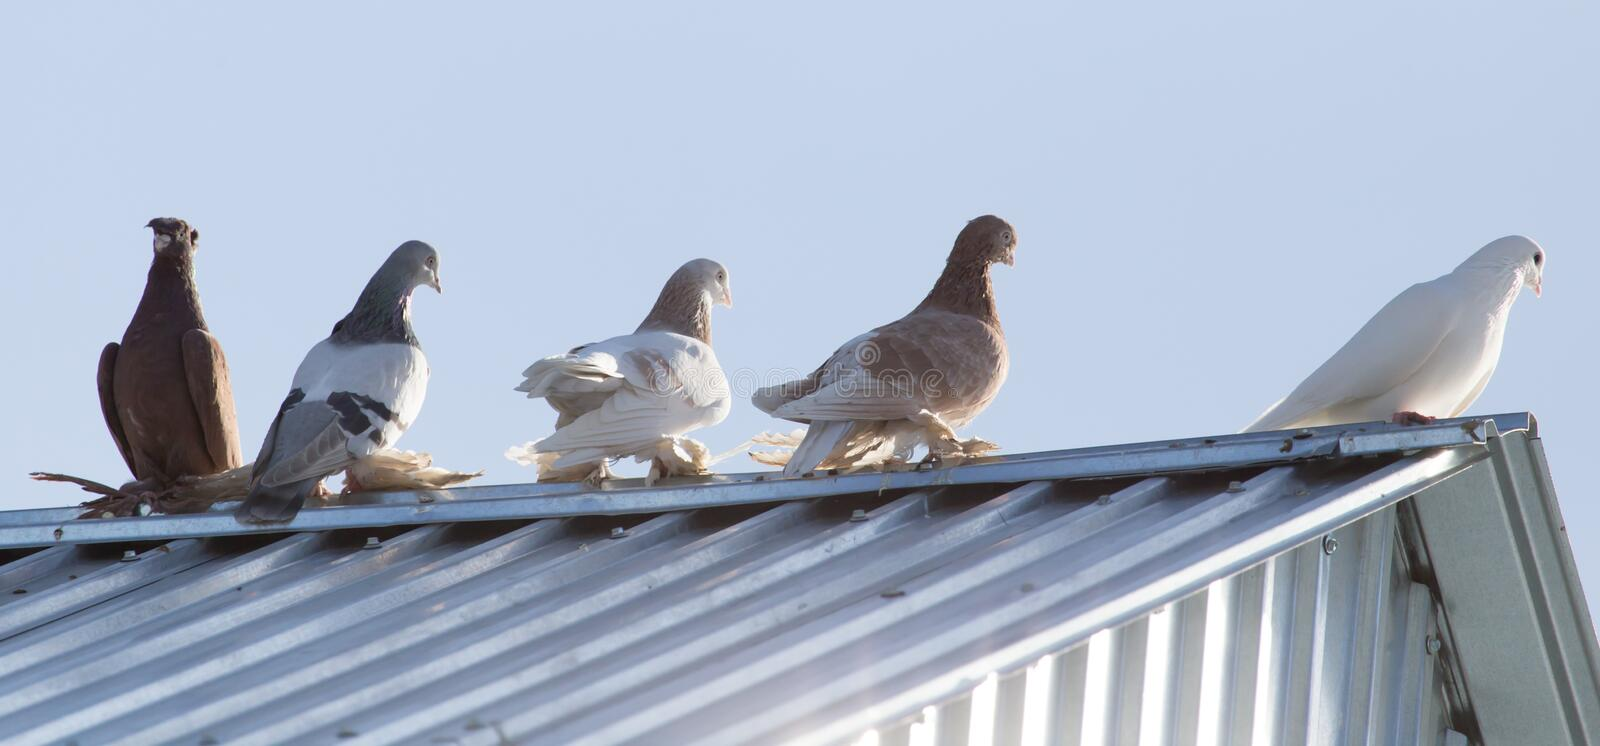 Pigeons on the roof stock image